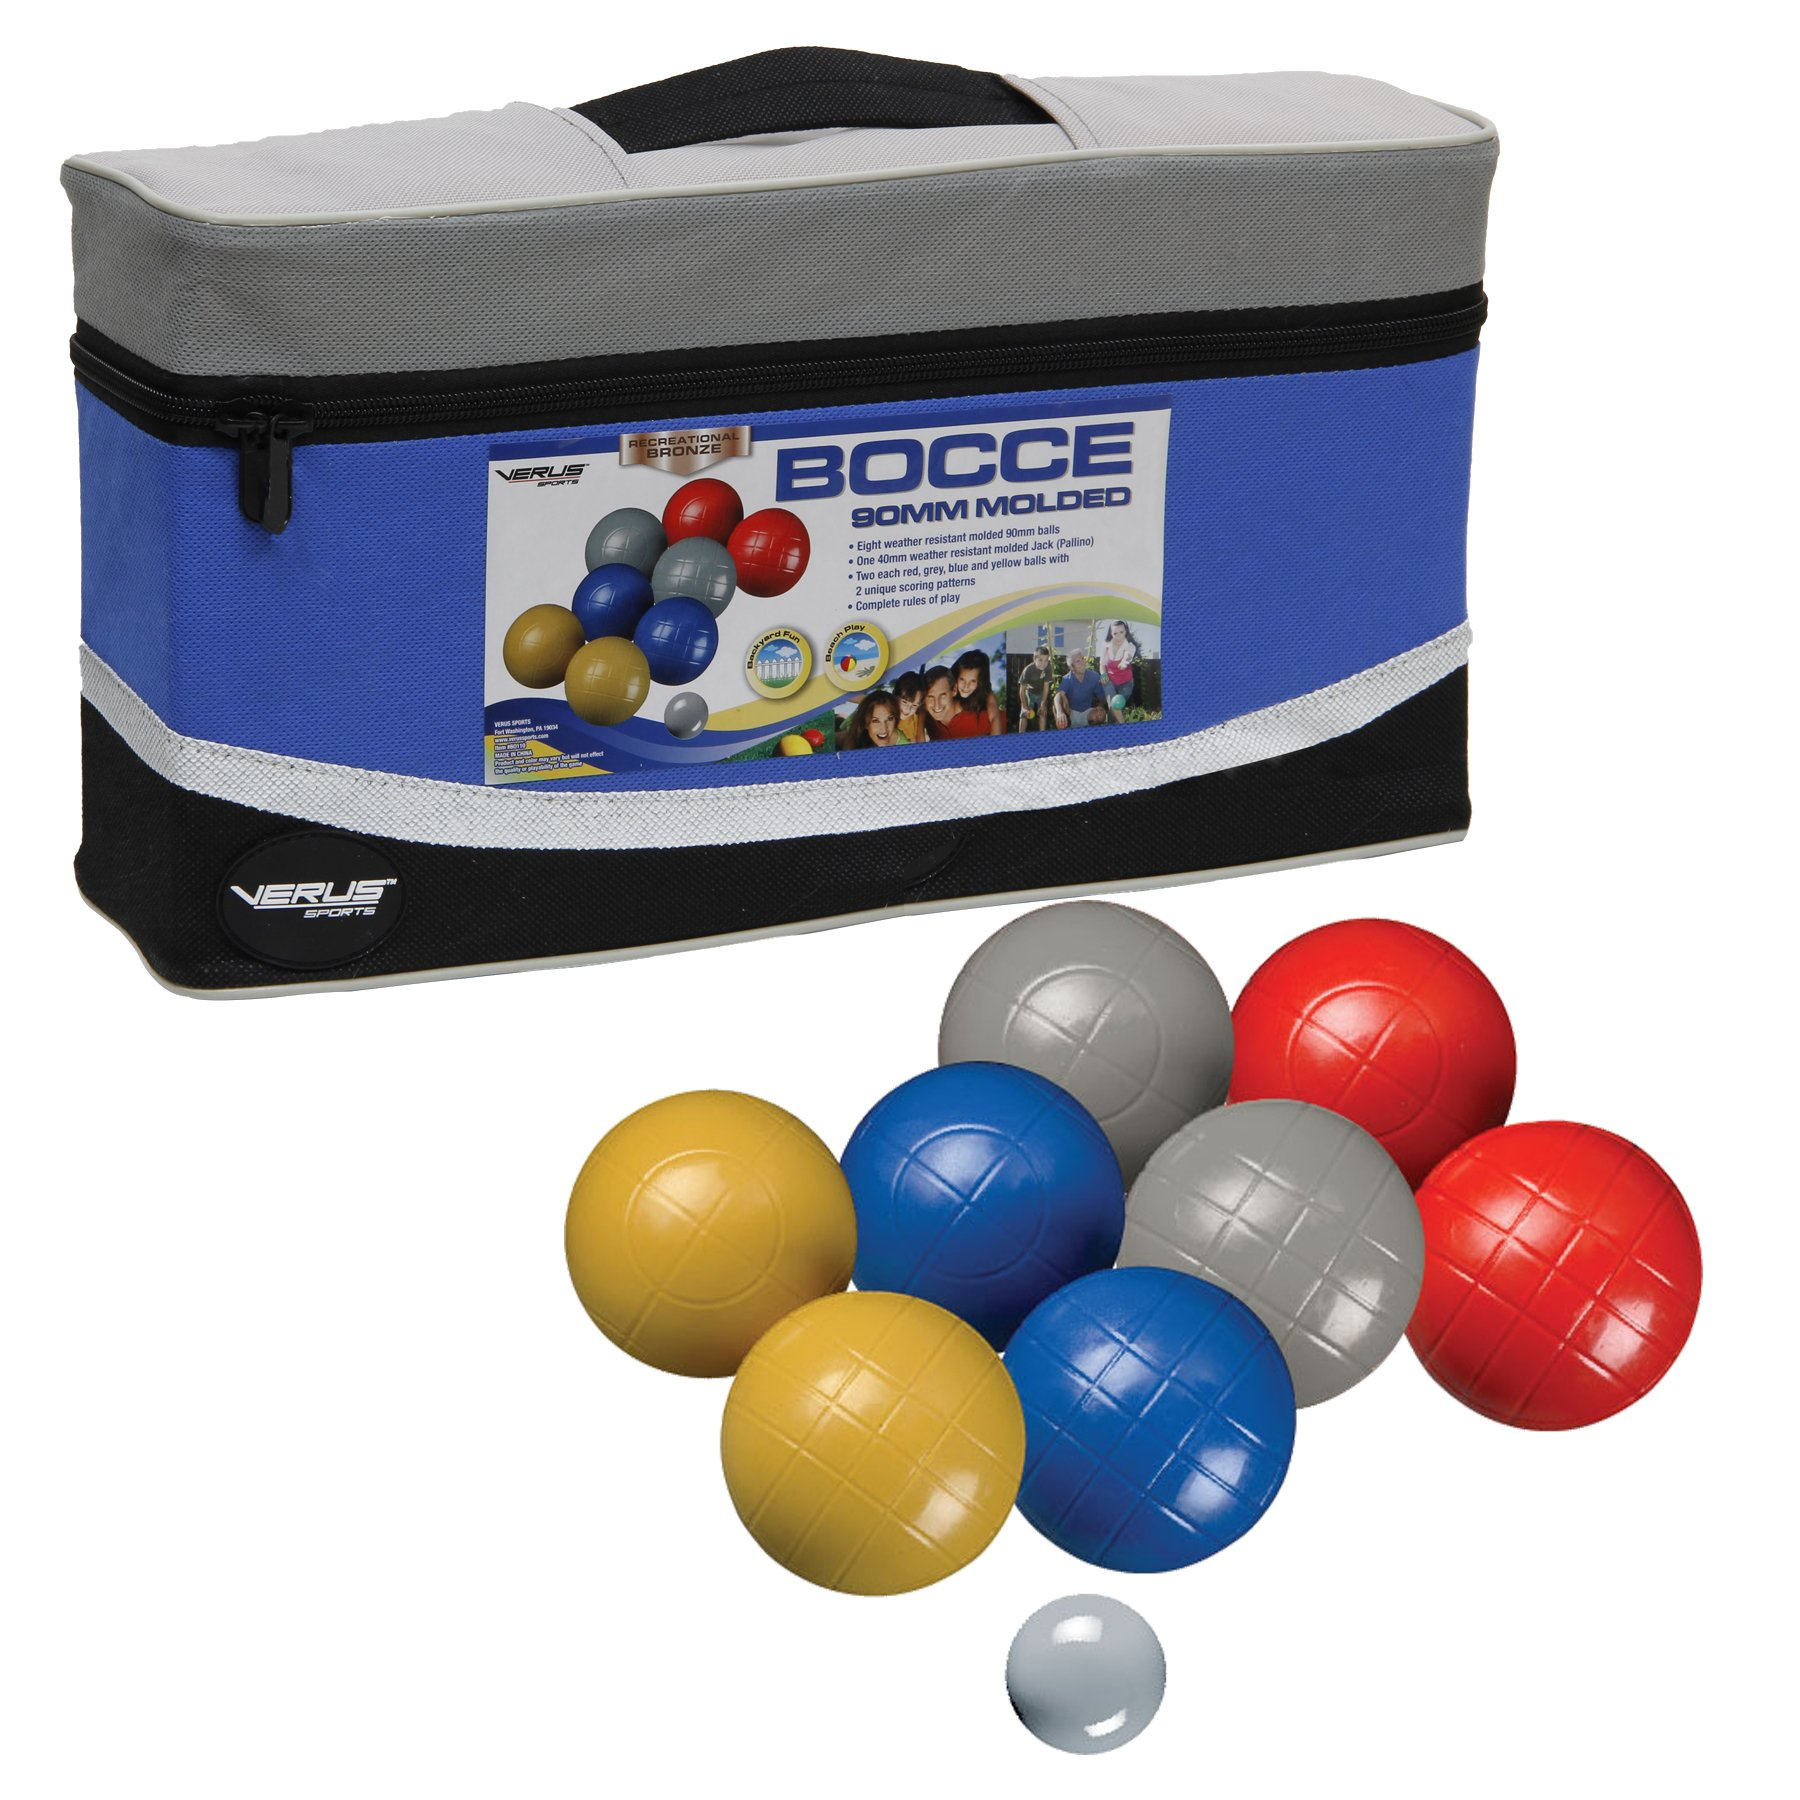 Recreational 90mm Bocce Set by Verus Sports